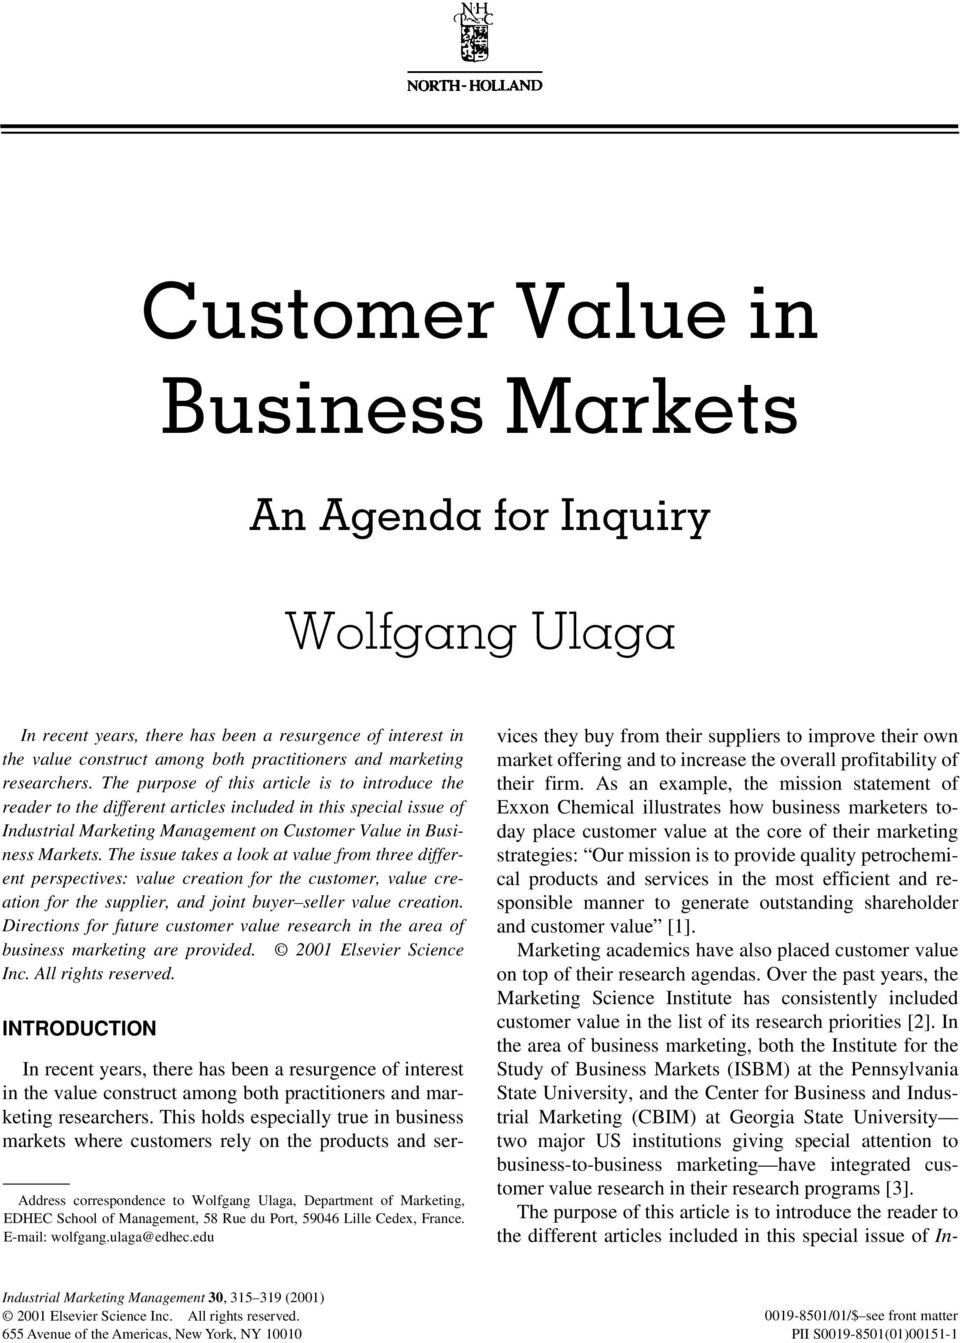 The issue takes a look at value from three different perspectives: value creation for the customer, value creation for the supplier, and joint buyer seller value creation.